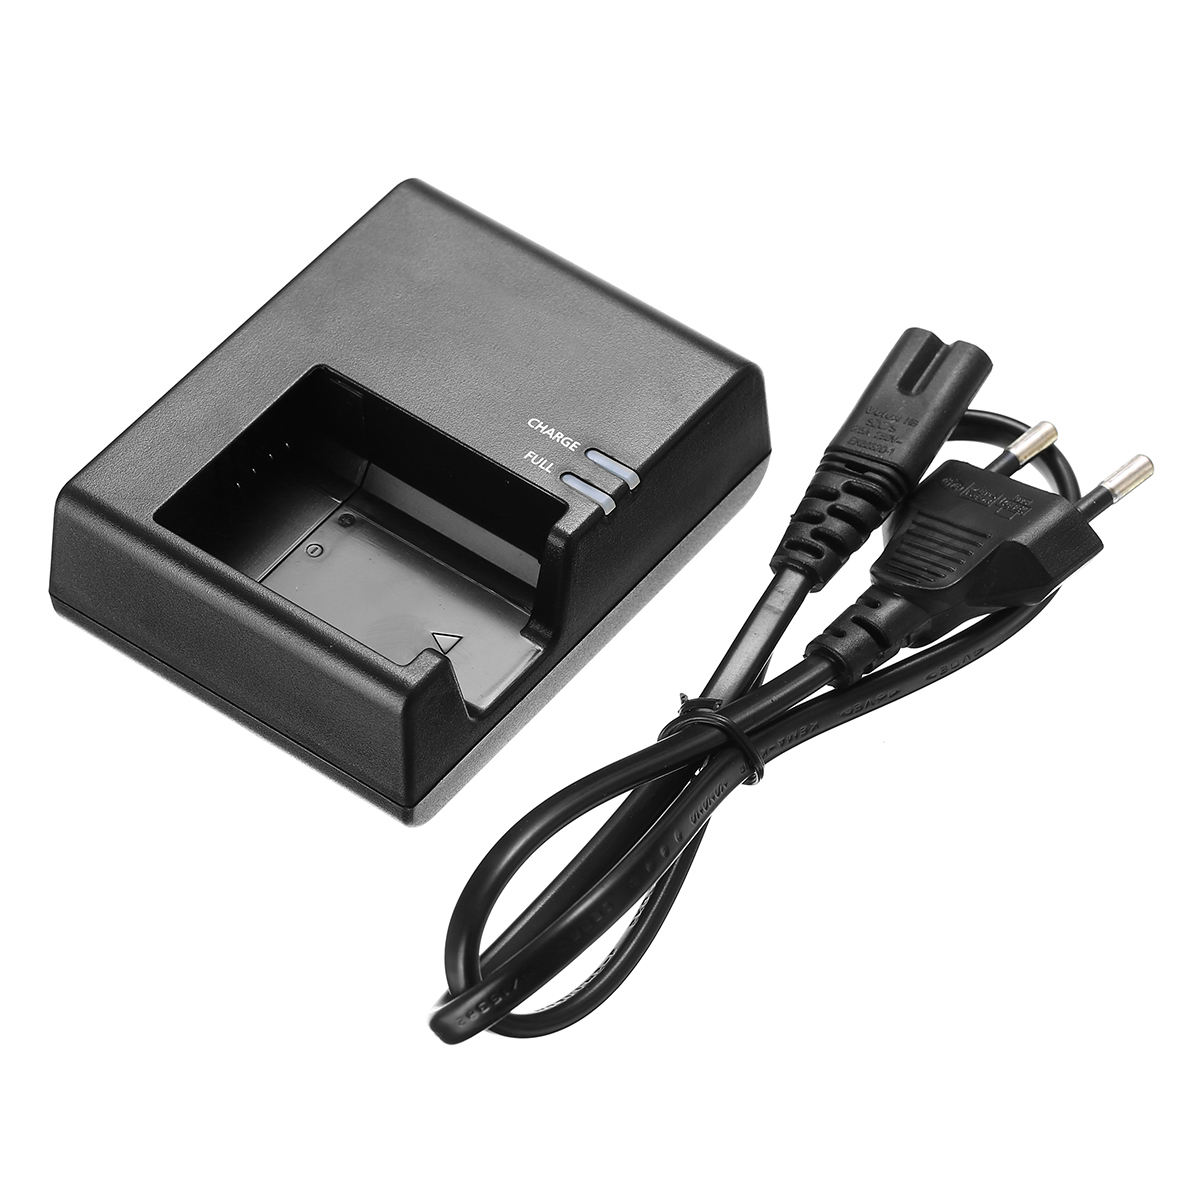 Mayitr 1pc High Quality LC-E10C Battery Charger With 61cm Power Cord For Canon LP-E10 EOS 1100D 1200D Kiss X50 Rebel T3 стоимость